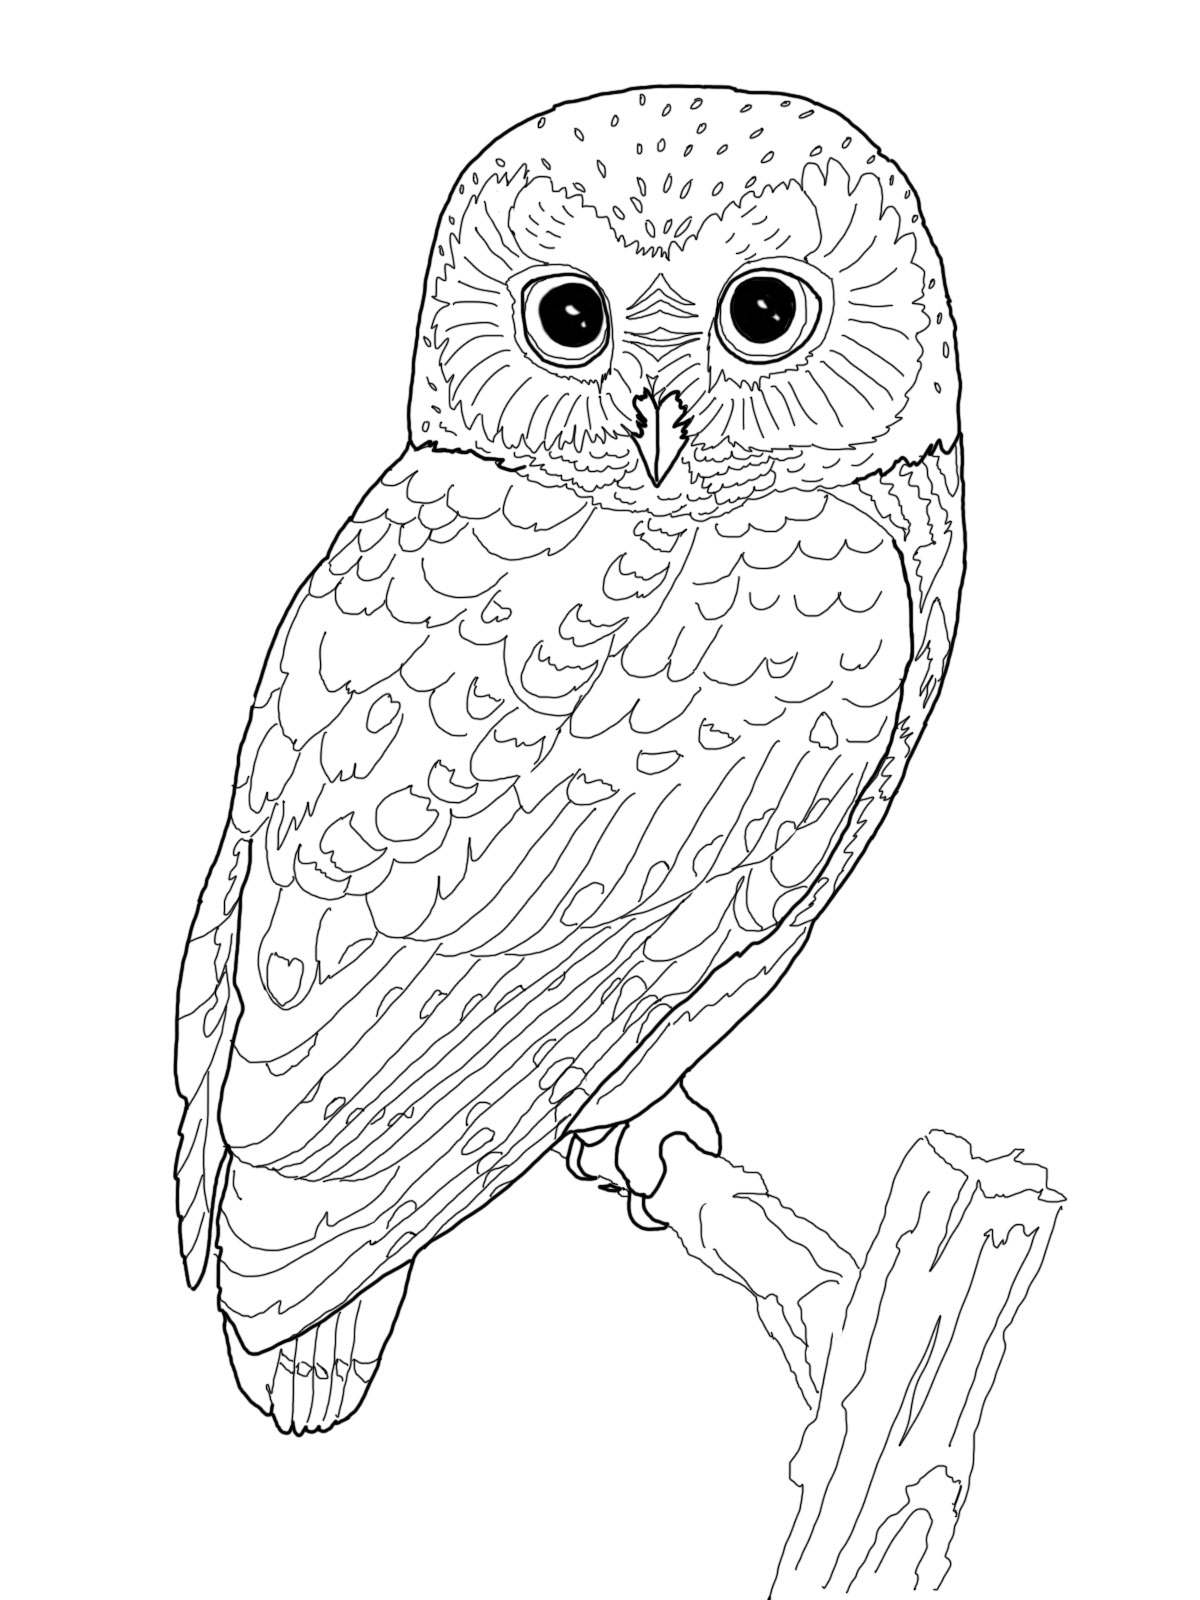 owl coloring pages free printable owl coloring pages for adults free detailed owl coloring owl free printable coloring pages